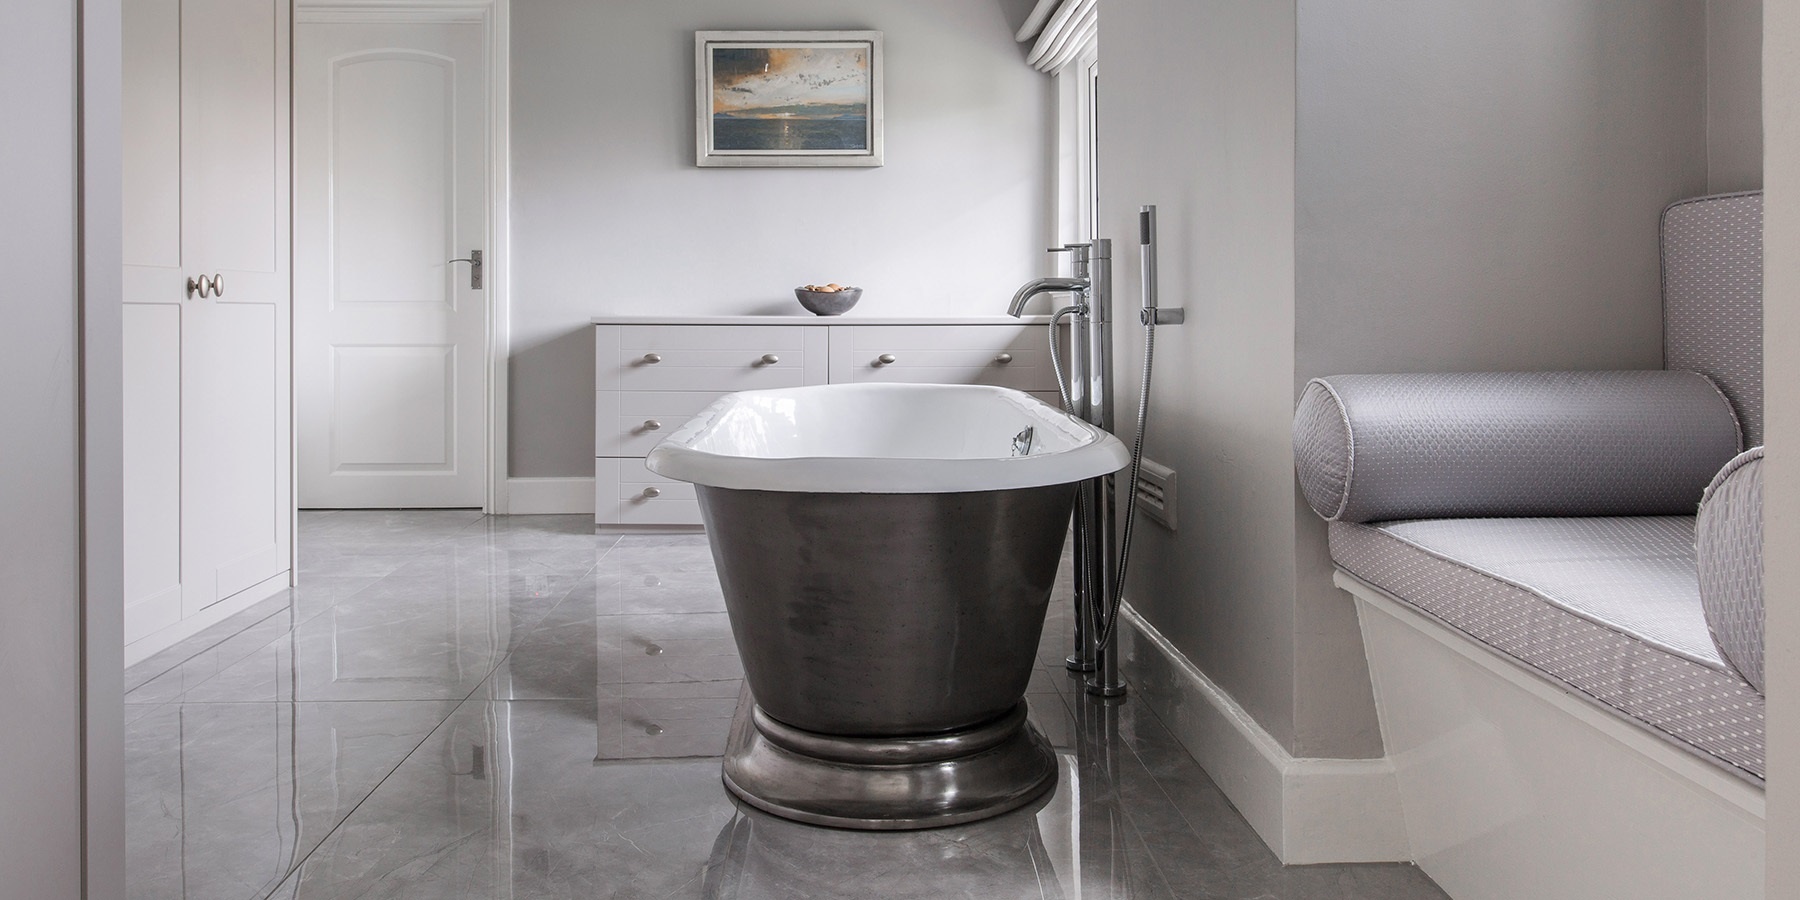 Burlanes Bespoke Bathroom Design - Luxury bathroom design with handmade cast iron Hurlingham roll top bath.